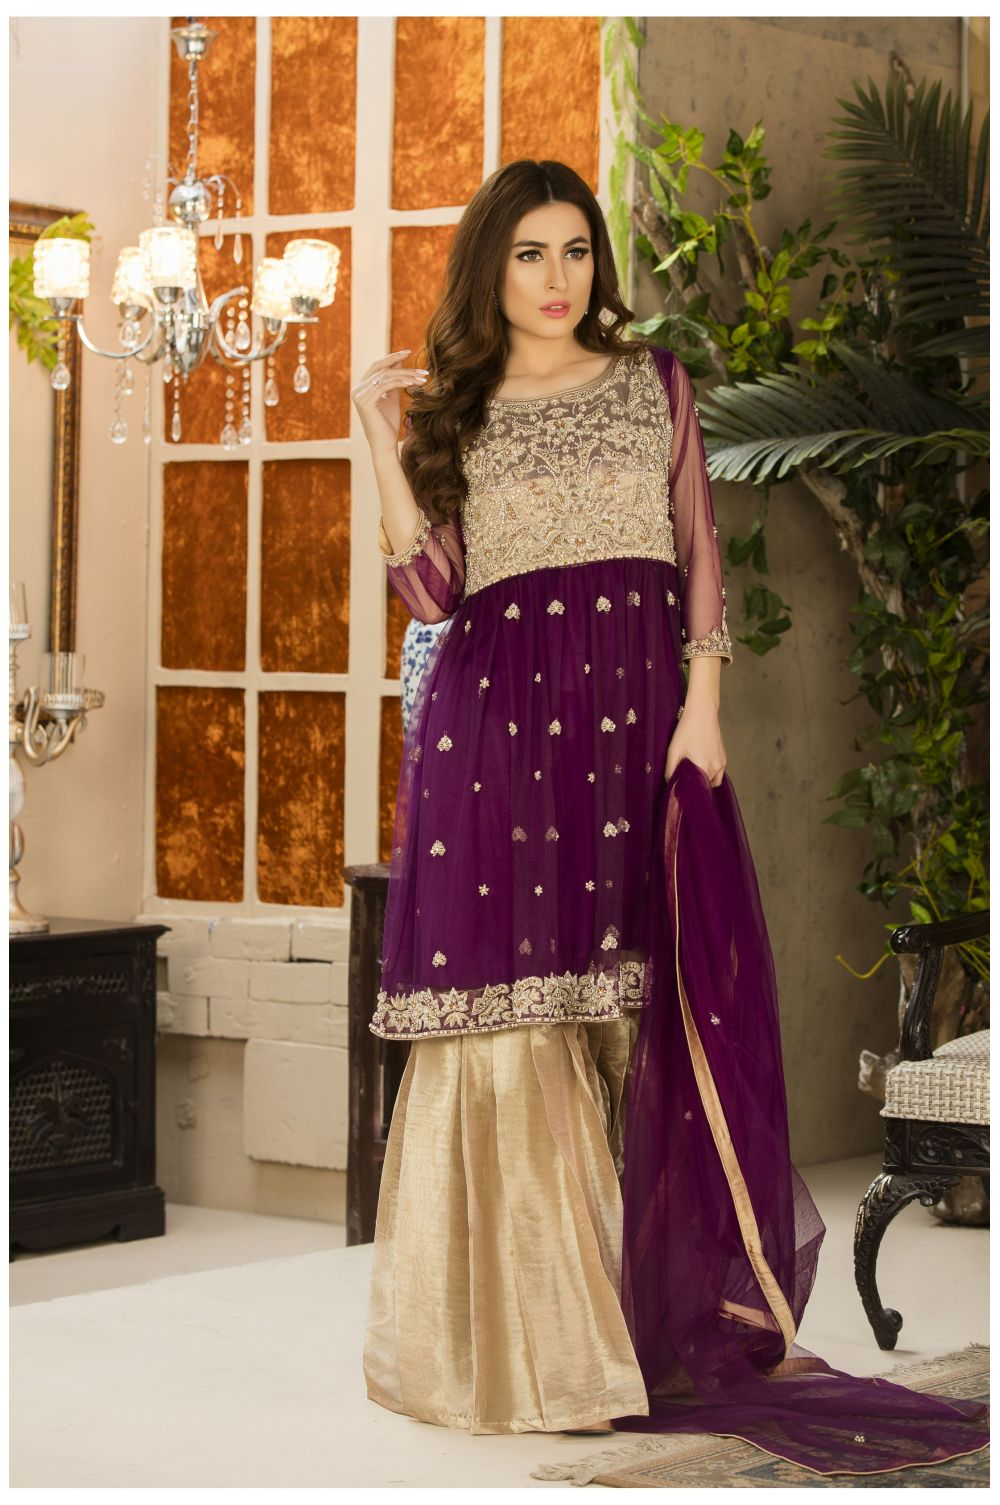 EXCLUSIVE PURPLE AND DULL GOLD DRESS G15499 Exclusive Online